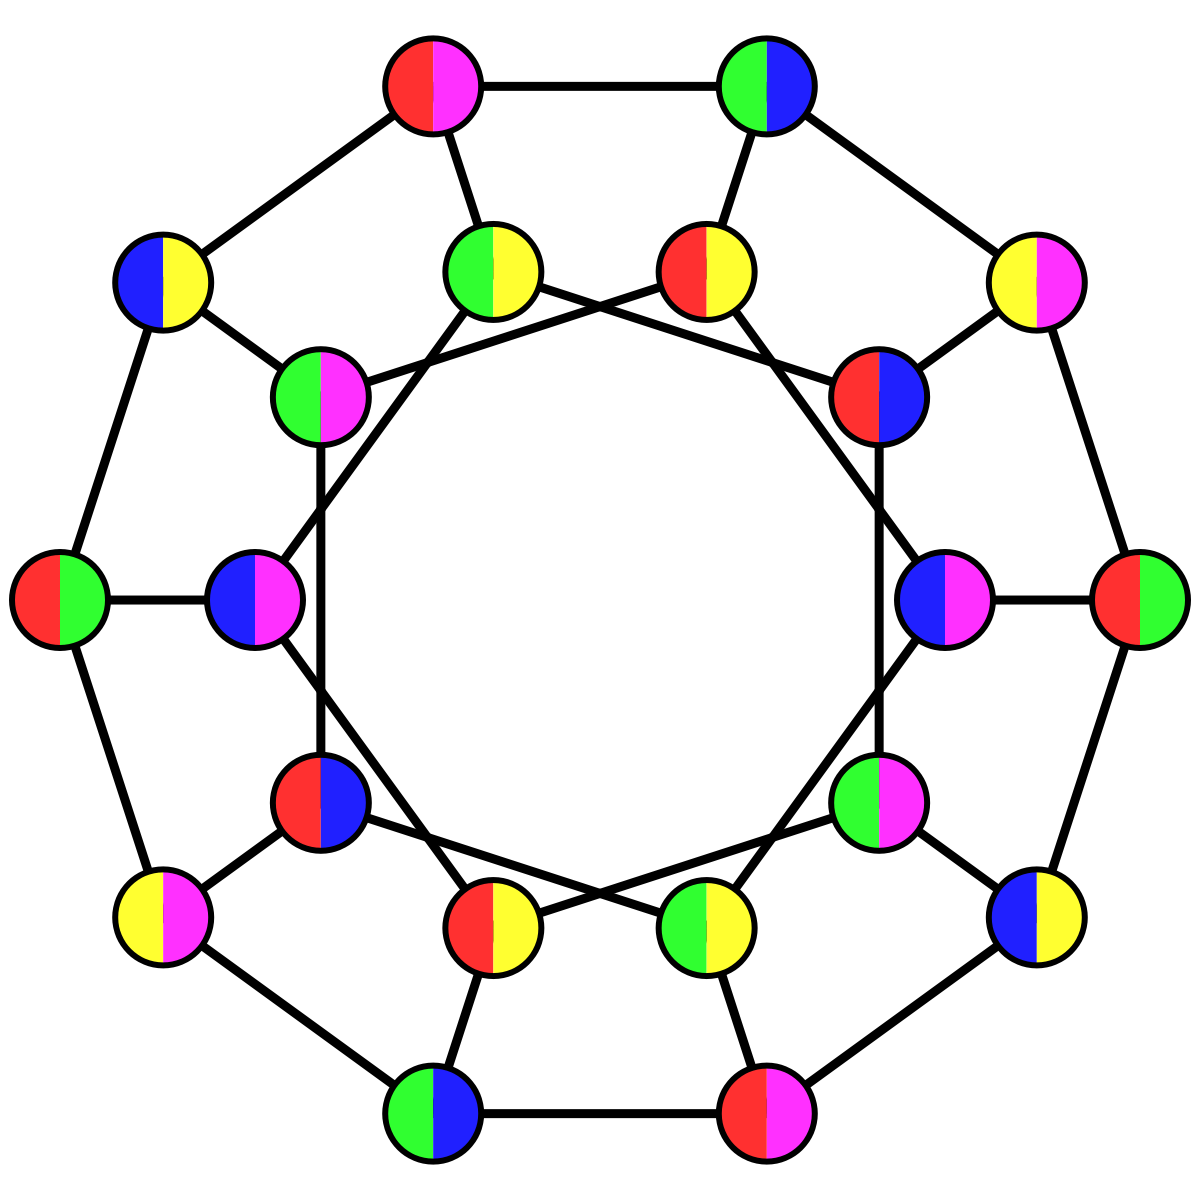 graph coloring 3